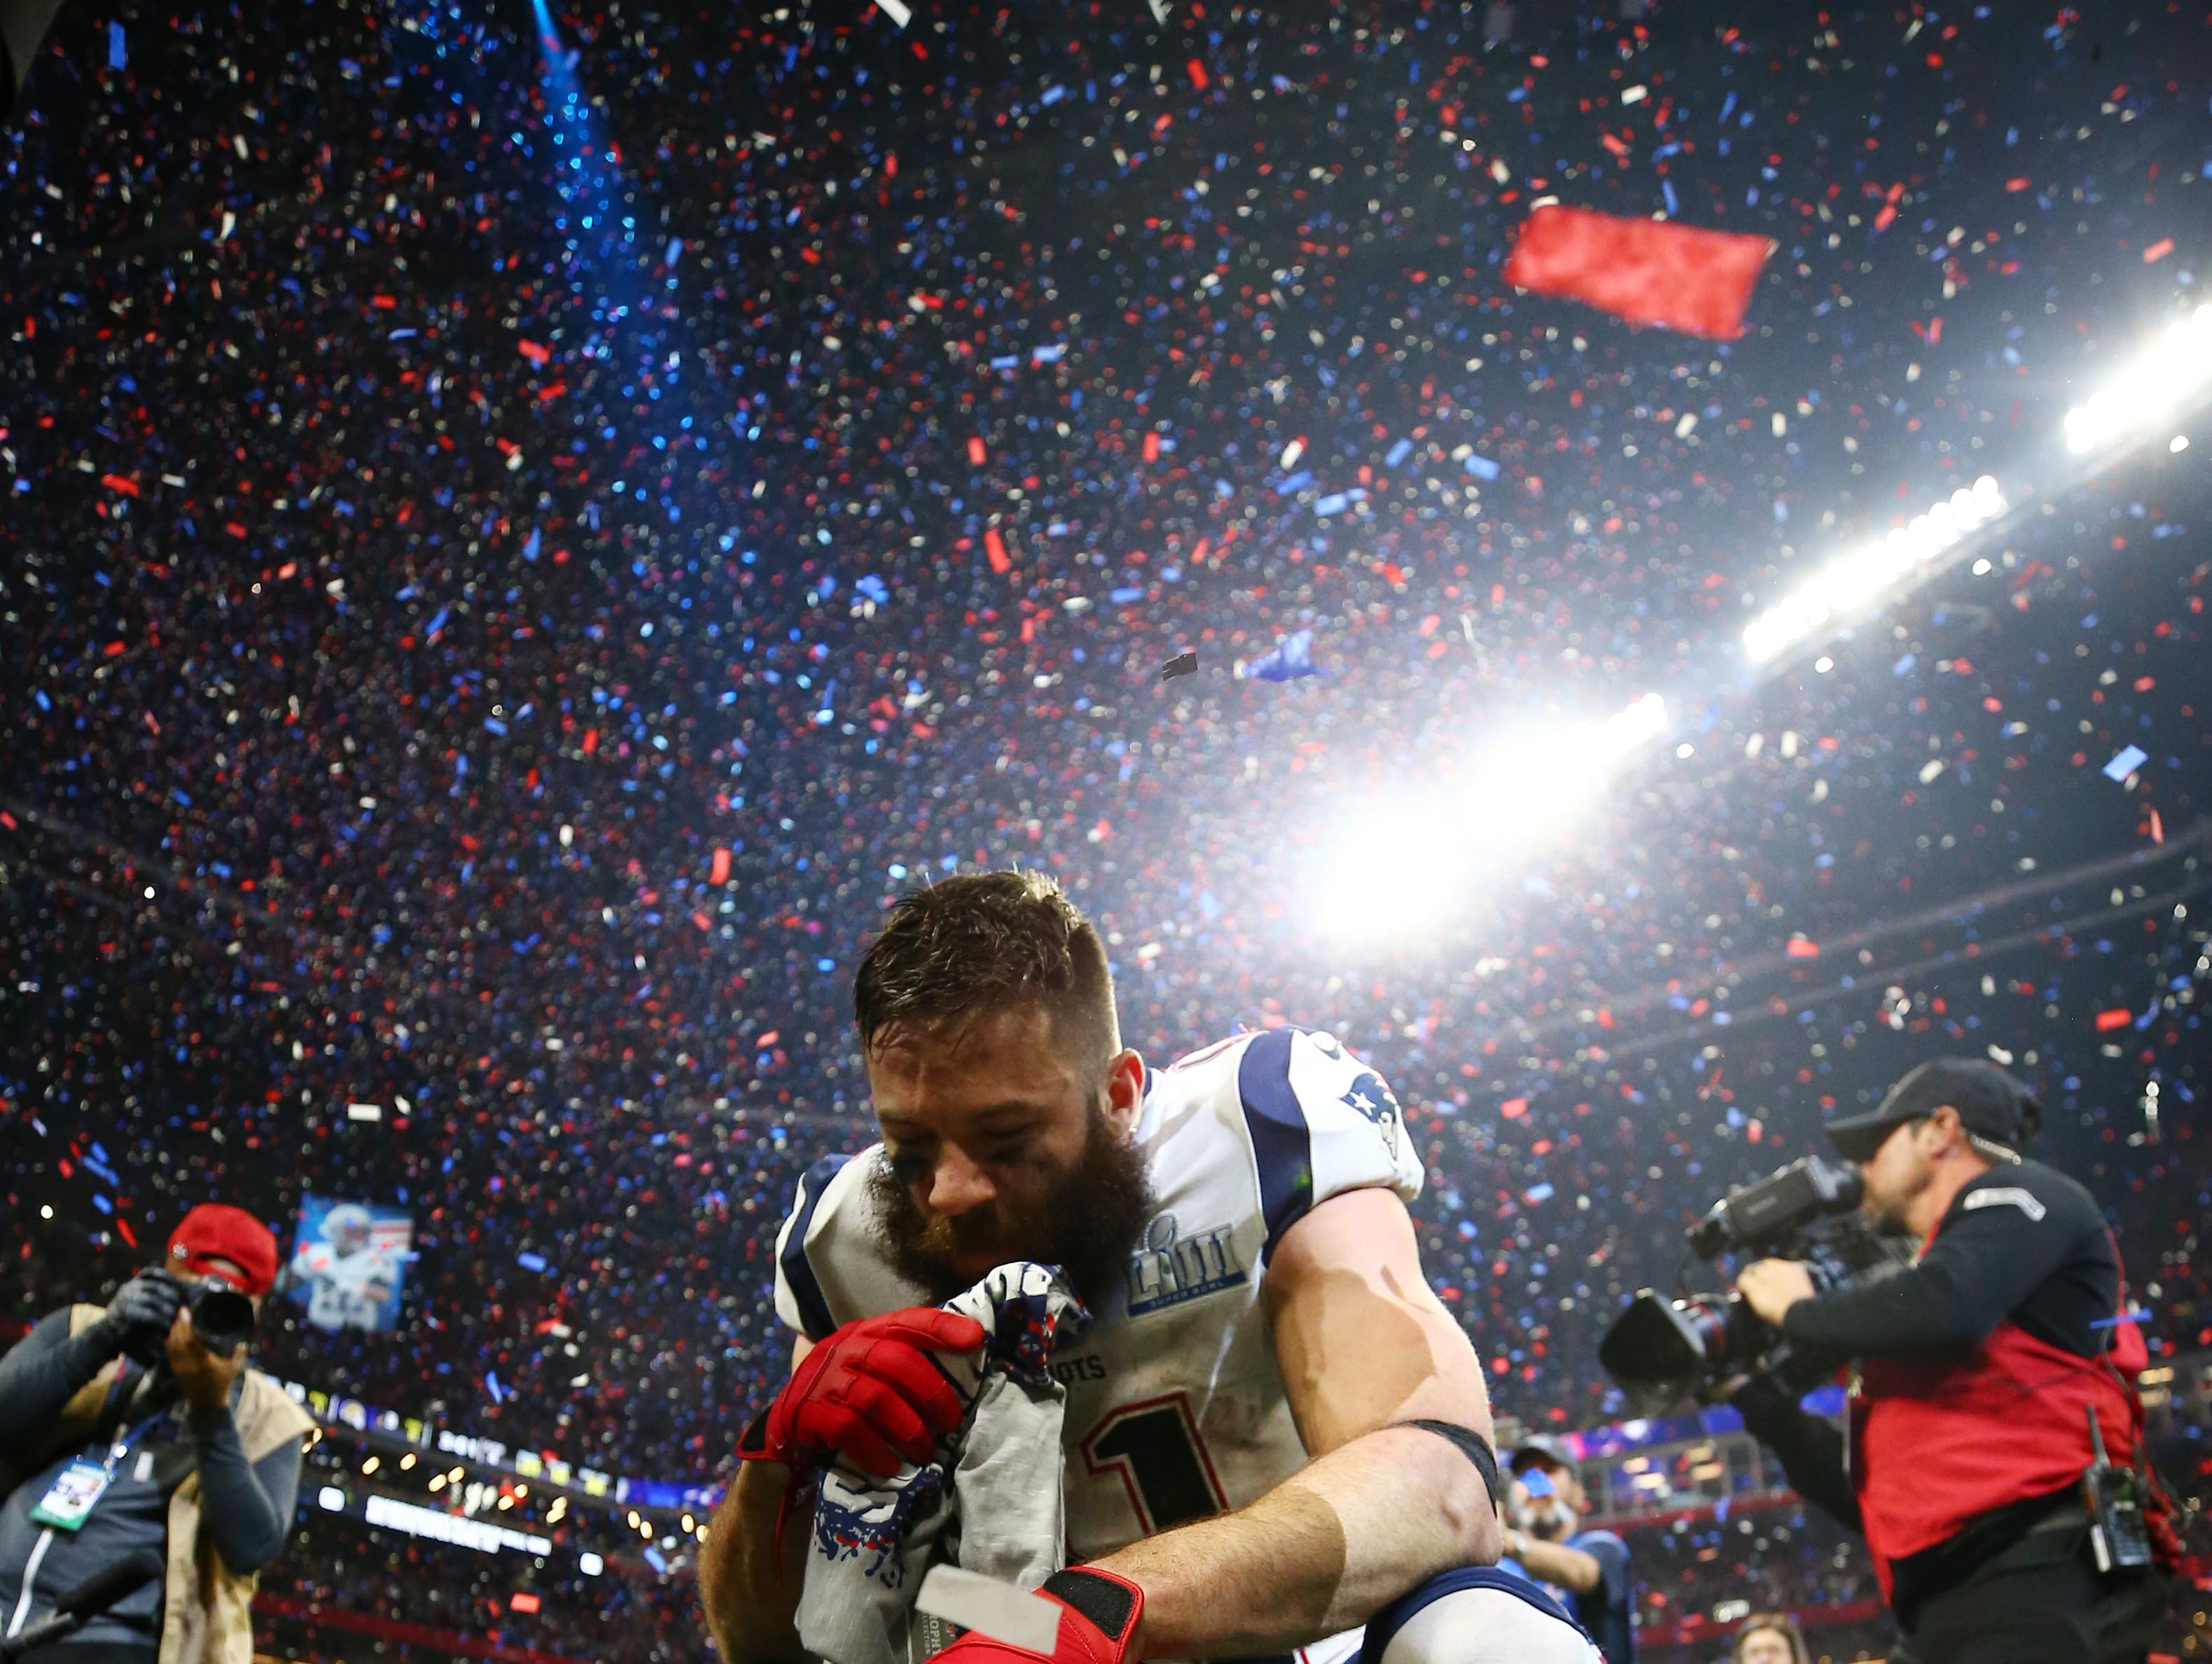 Wide receiver Julian Edelman (11) celebrates on the field after leading the New England Patriots to a 13-3 win over the Los Angeles RAms in Super Bowl LIII.